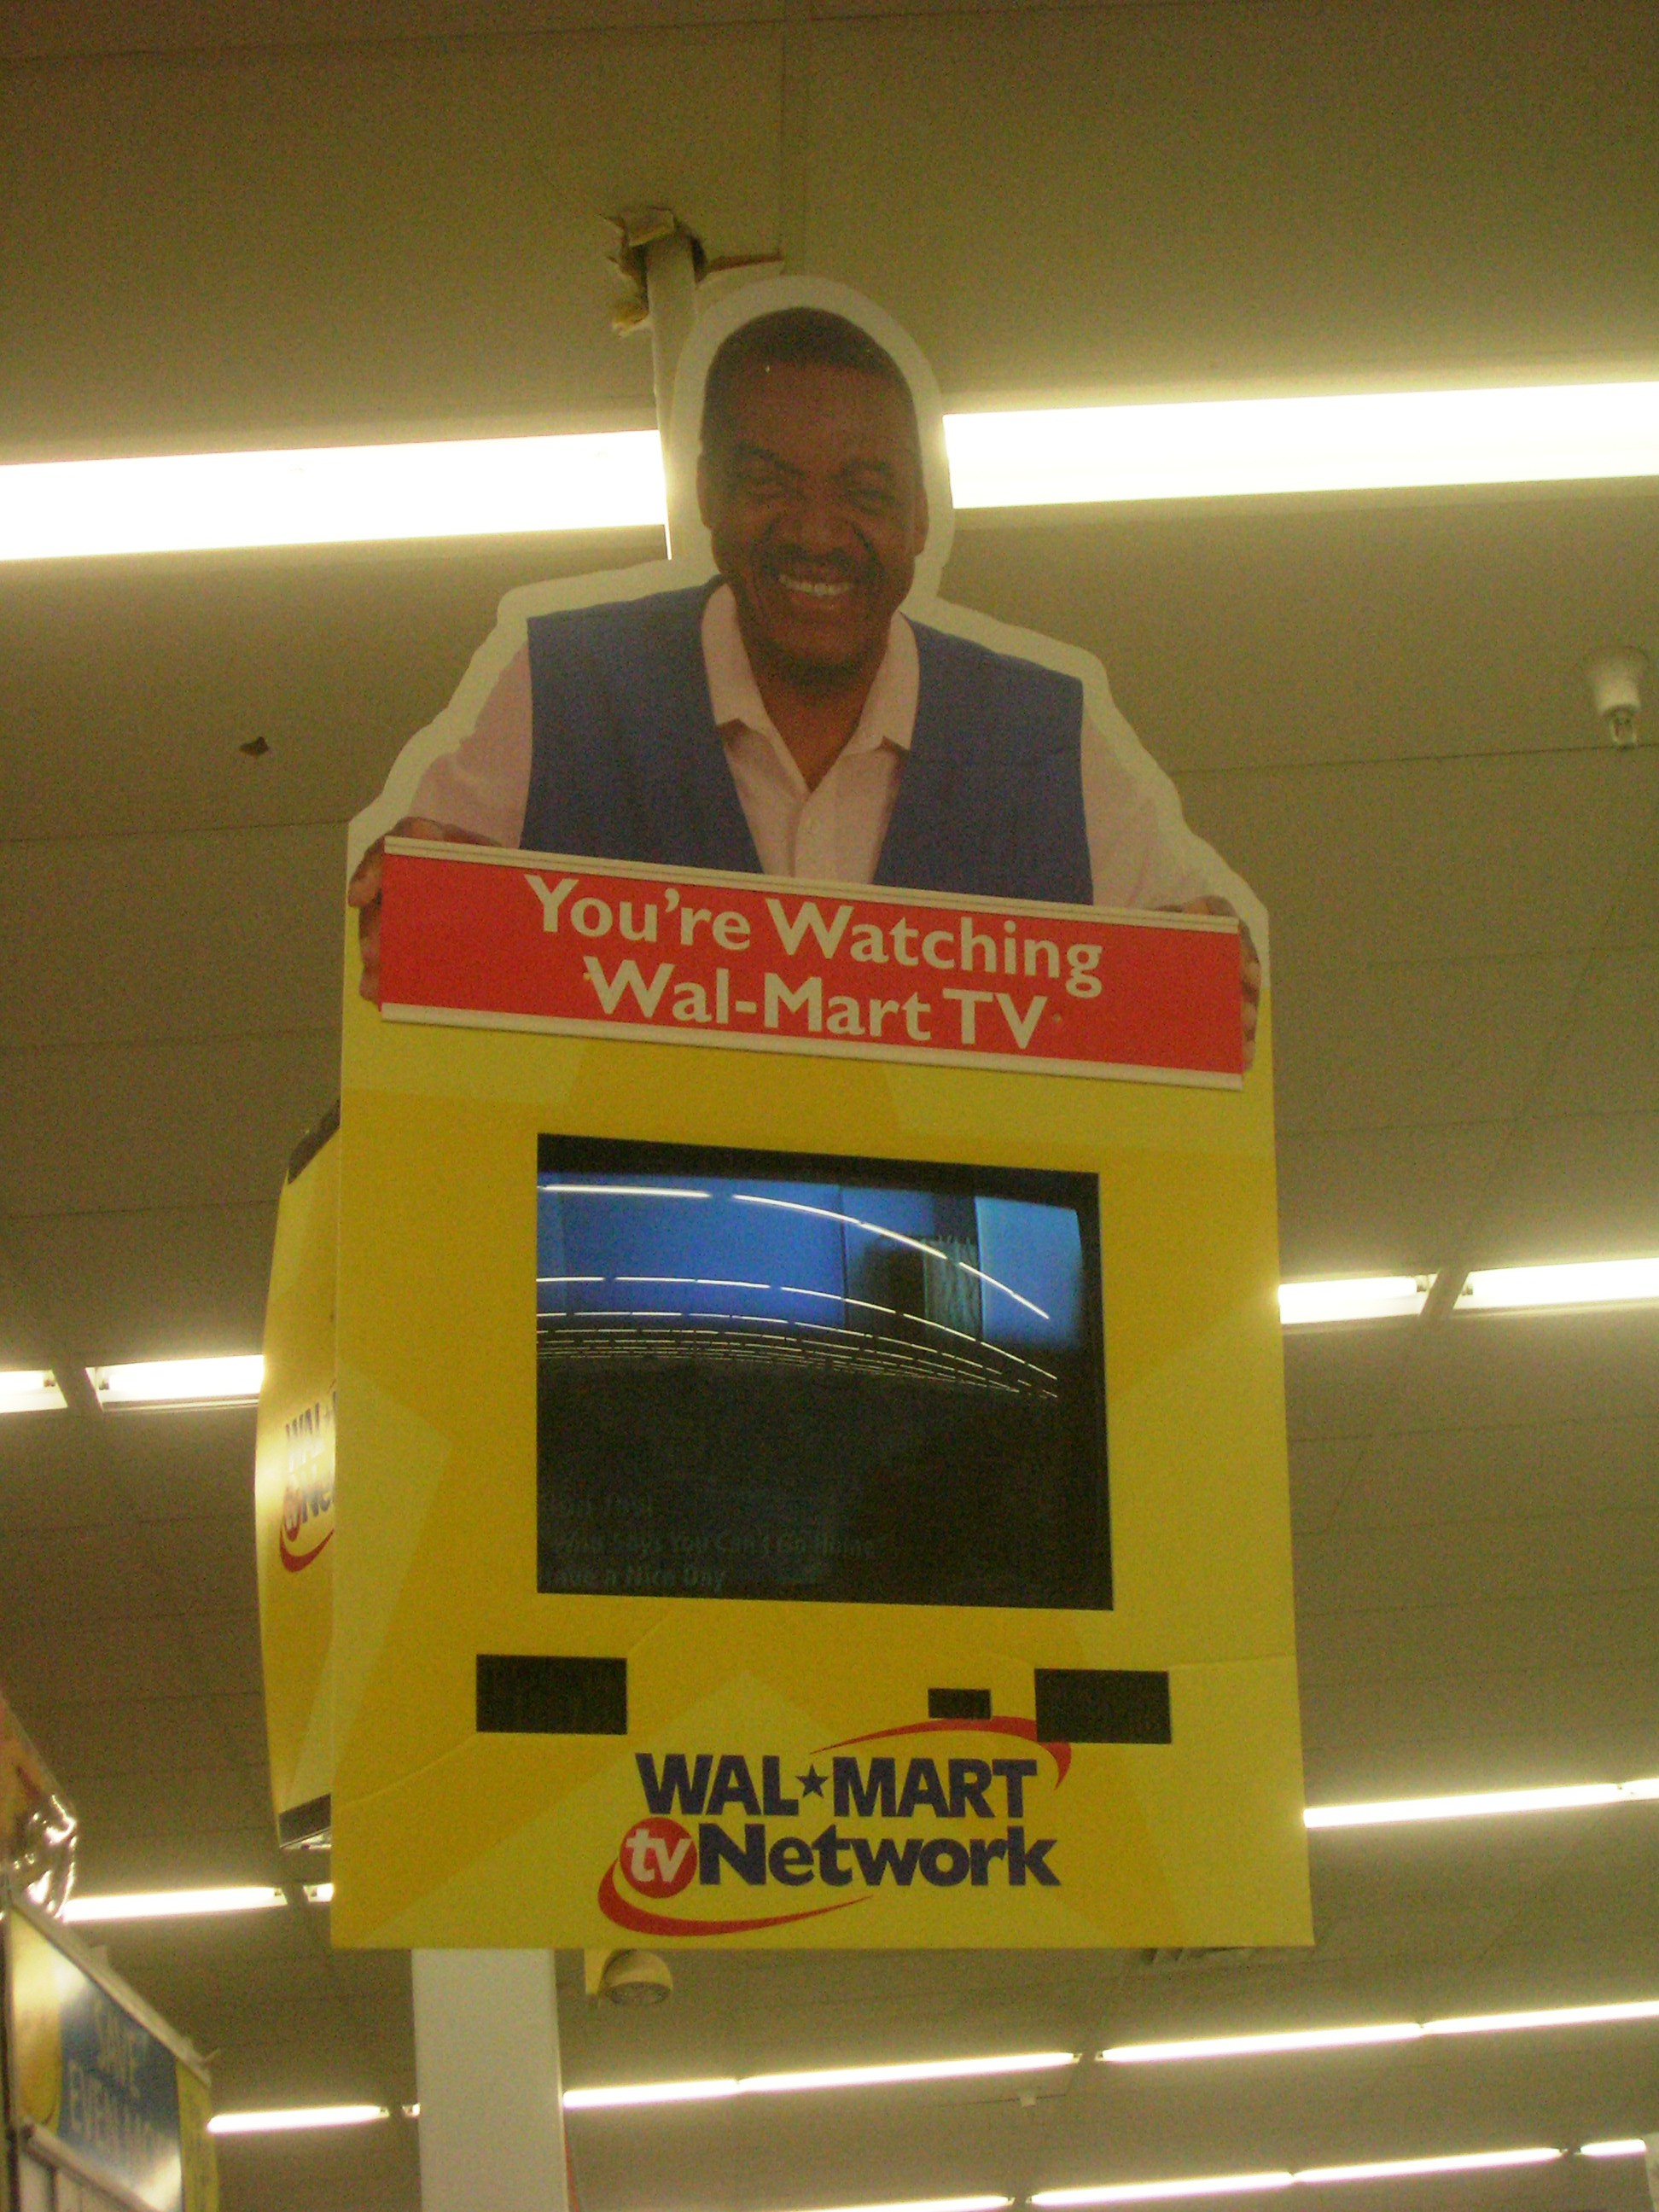 You're Watching Wal-Mart TV